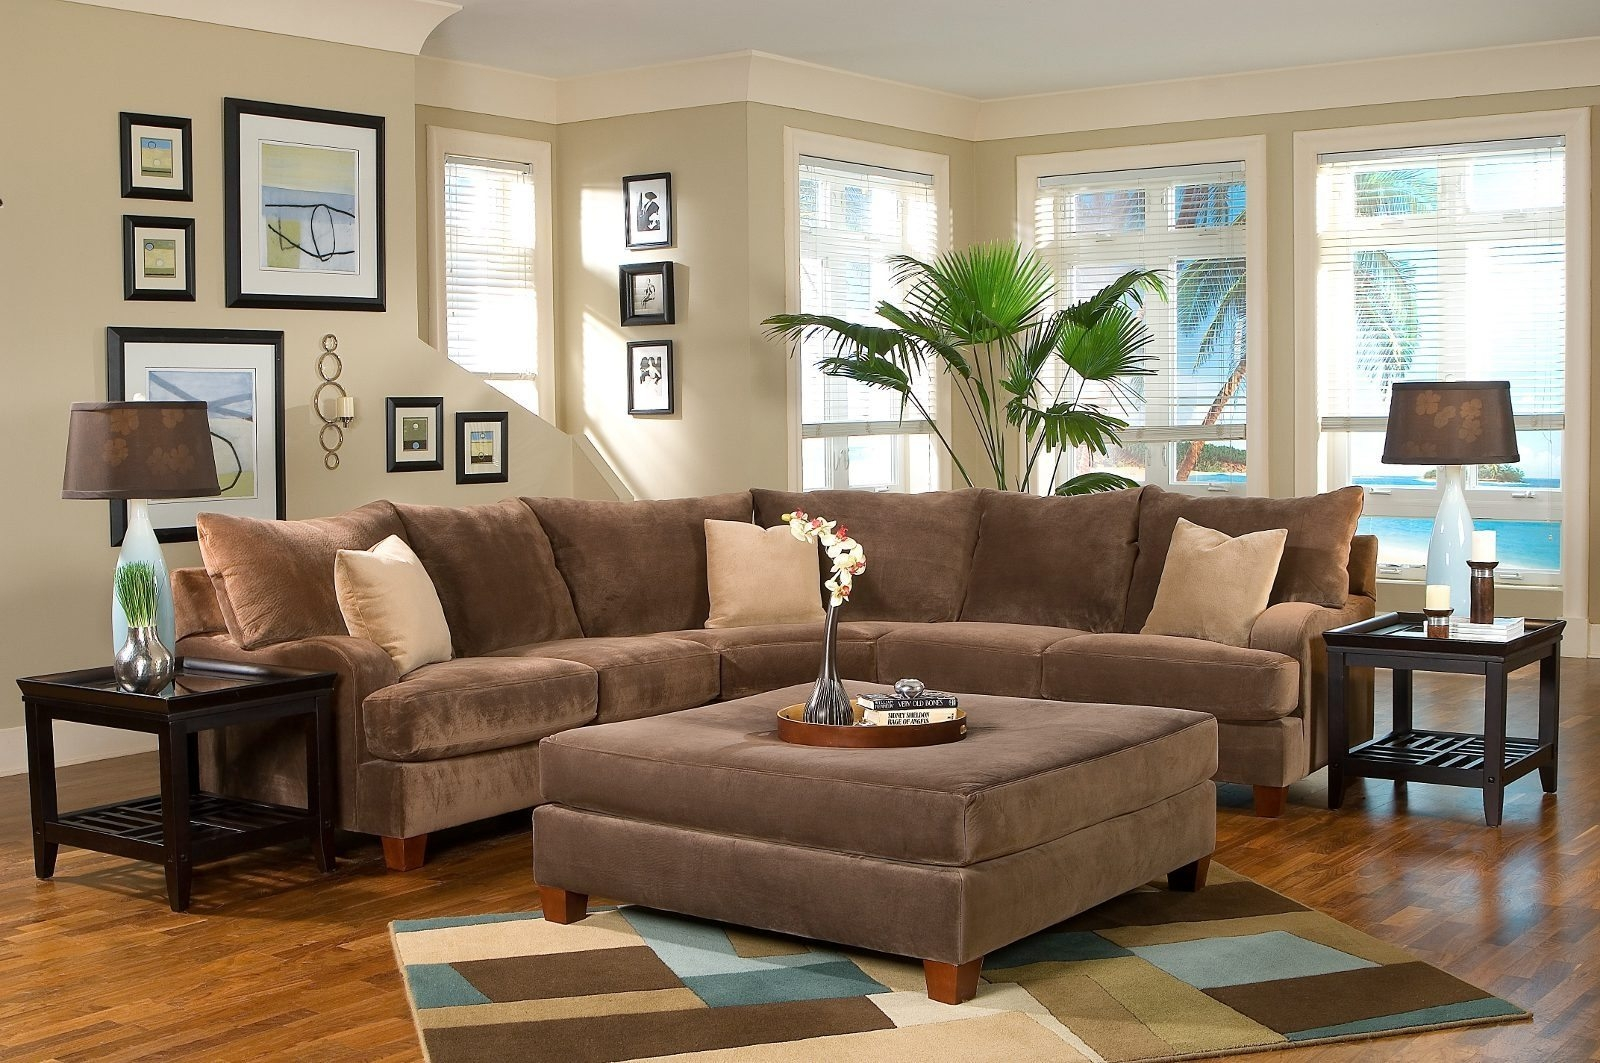 Deep Cushion Sofa All Information Sofa Desain Ideas Pertaining To Deep Cushion Sofa (Image 1 of 15)